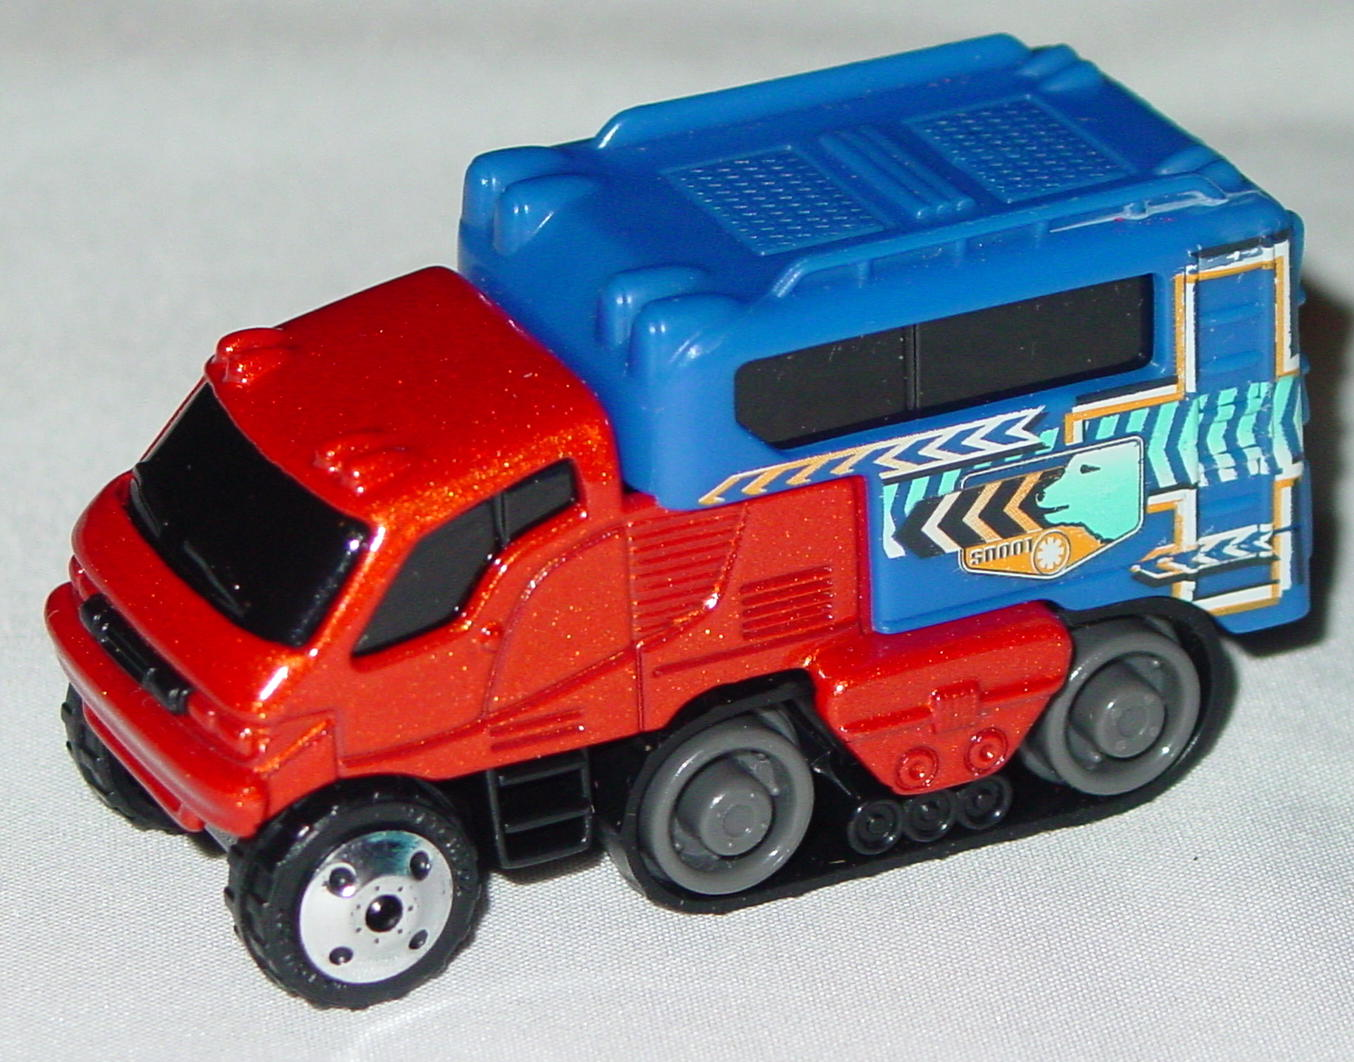 Offshore SuperFast 06 I 4 - 2002 68 Arctic Track Truck met Brnz blue cont made in China